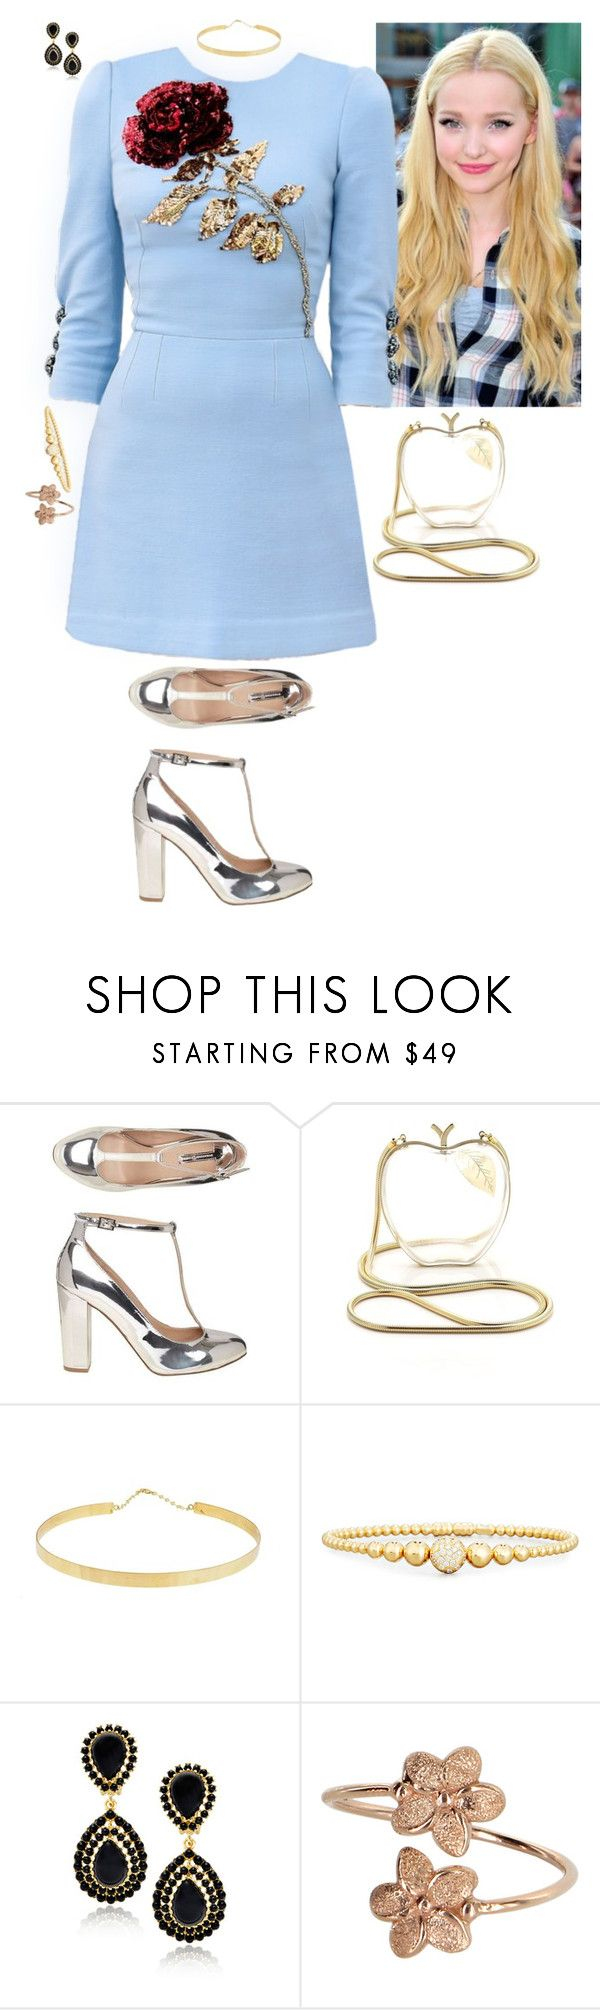 """Untitled #242"" by stinze on Polyvore featuring Dolce&Gabbana, Dorothy Perkins, Lena Erziak, Lana Jewelry, Rivière and Kenneth Jay Lane"